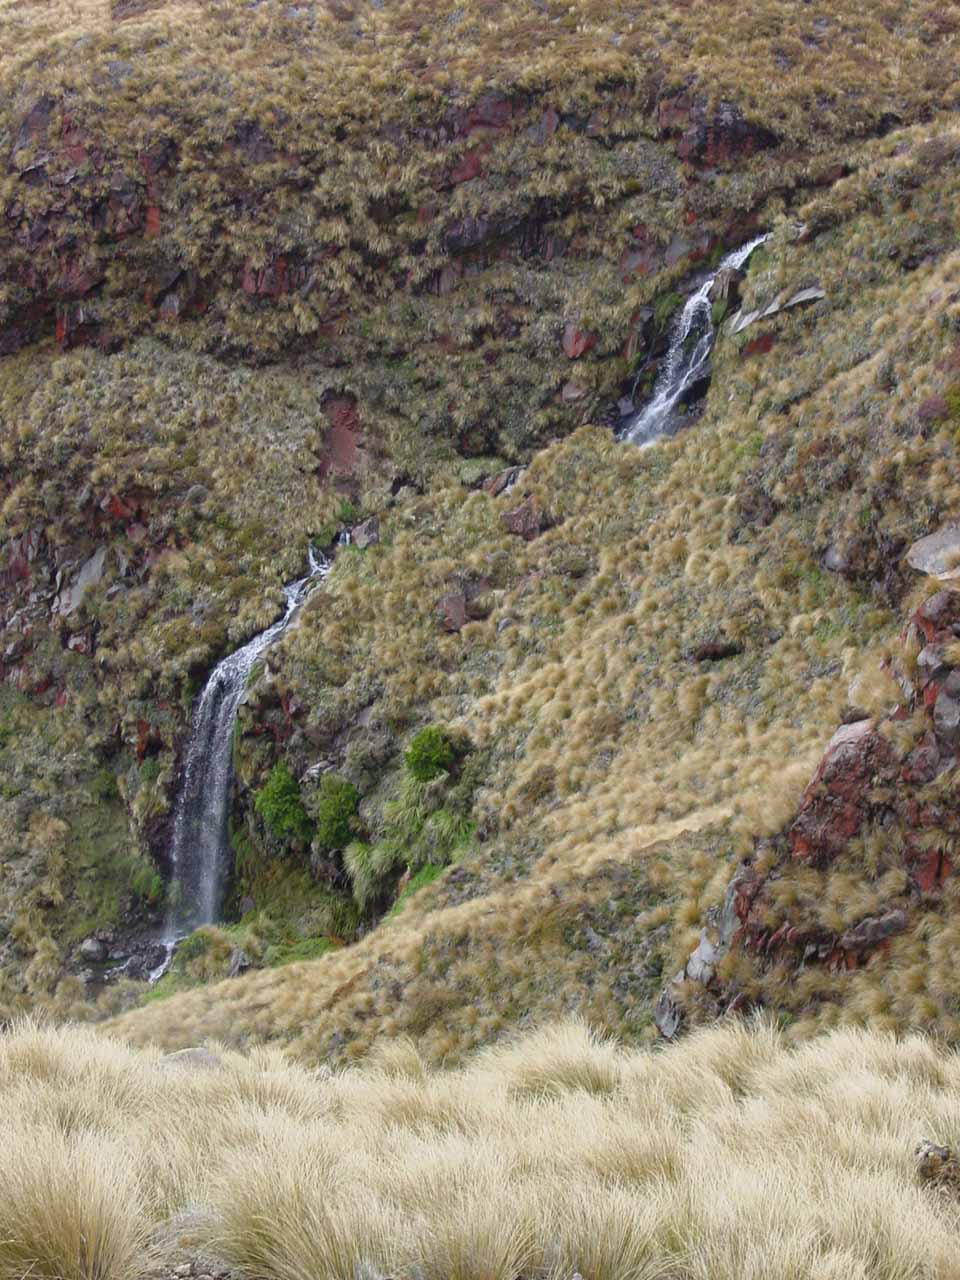 Looking down towards the thermal cascade that I called 'Ketetahi Hut Falls'